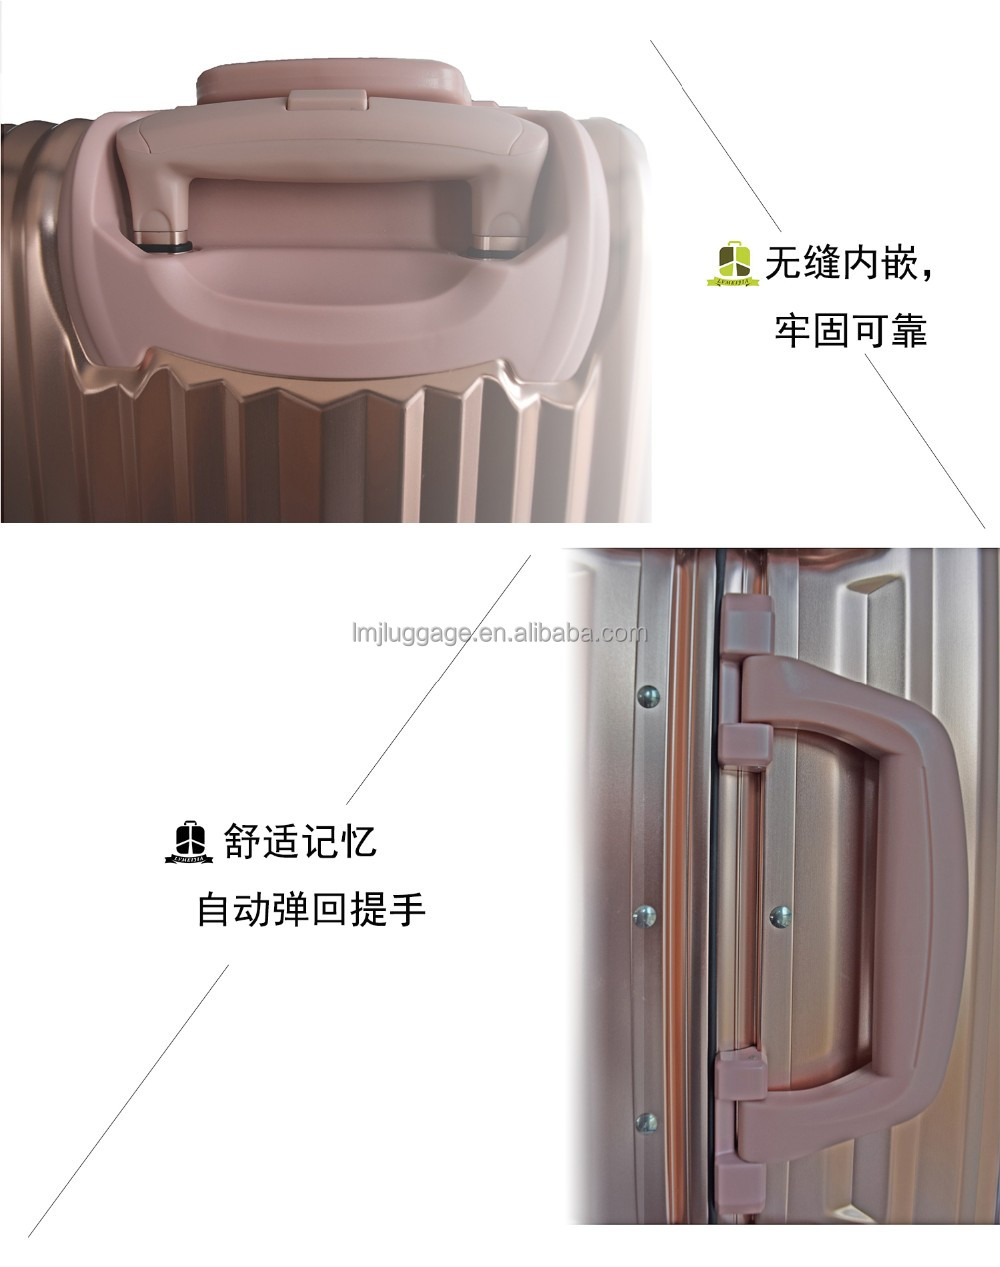 new Brand new aluminum metal luggage hard suitcase with metal frame high quality corner protector multiple colors